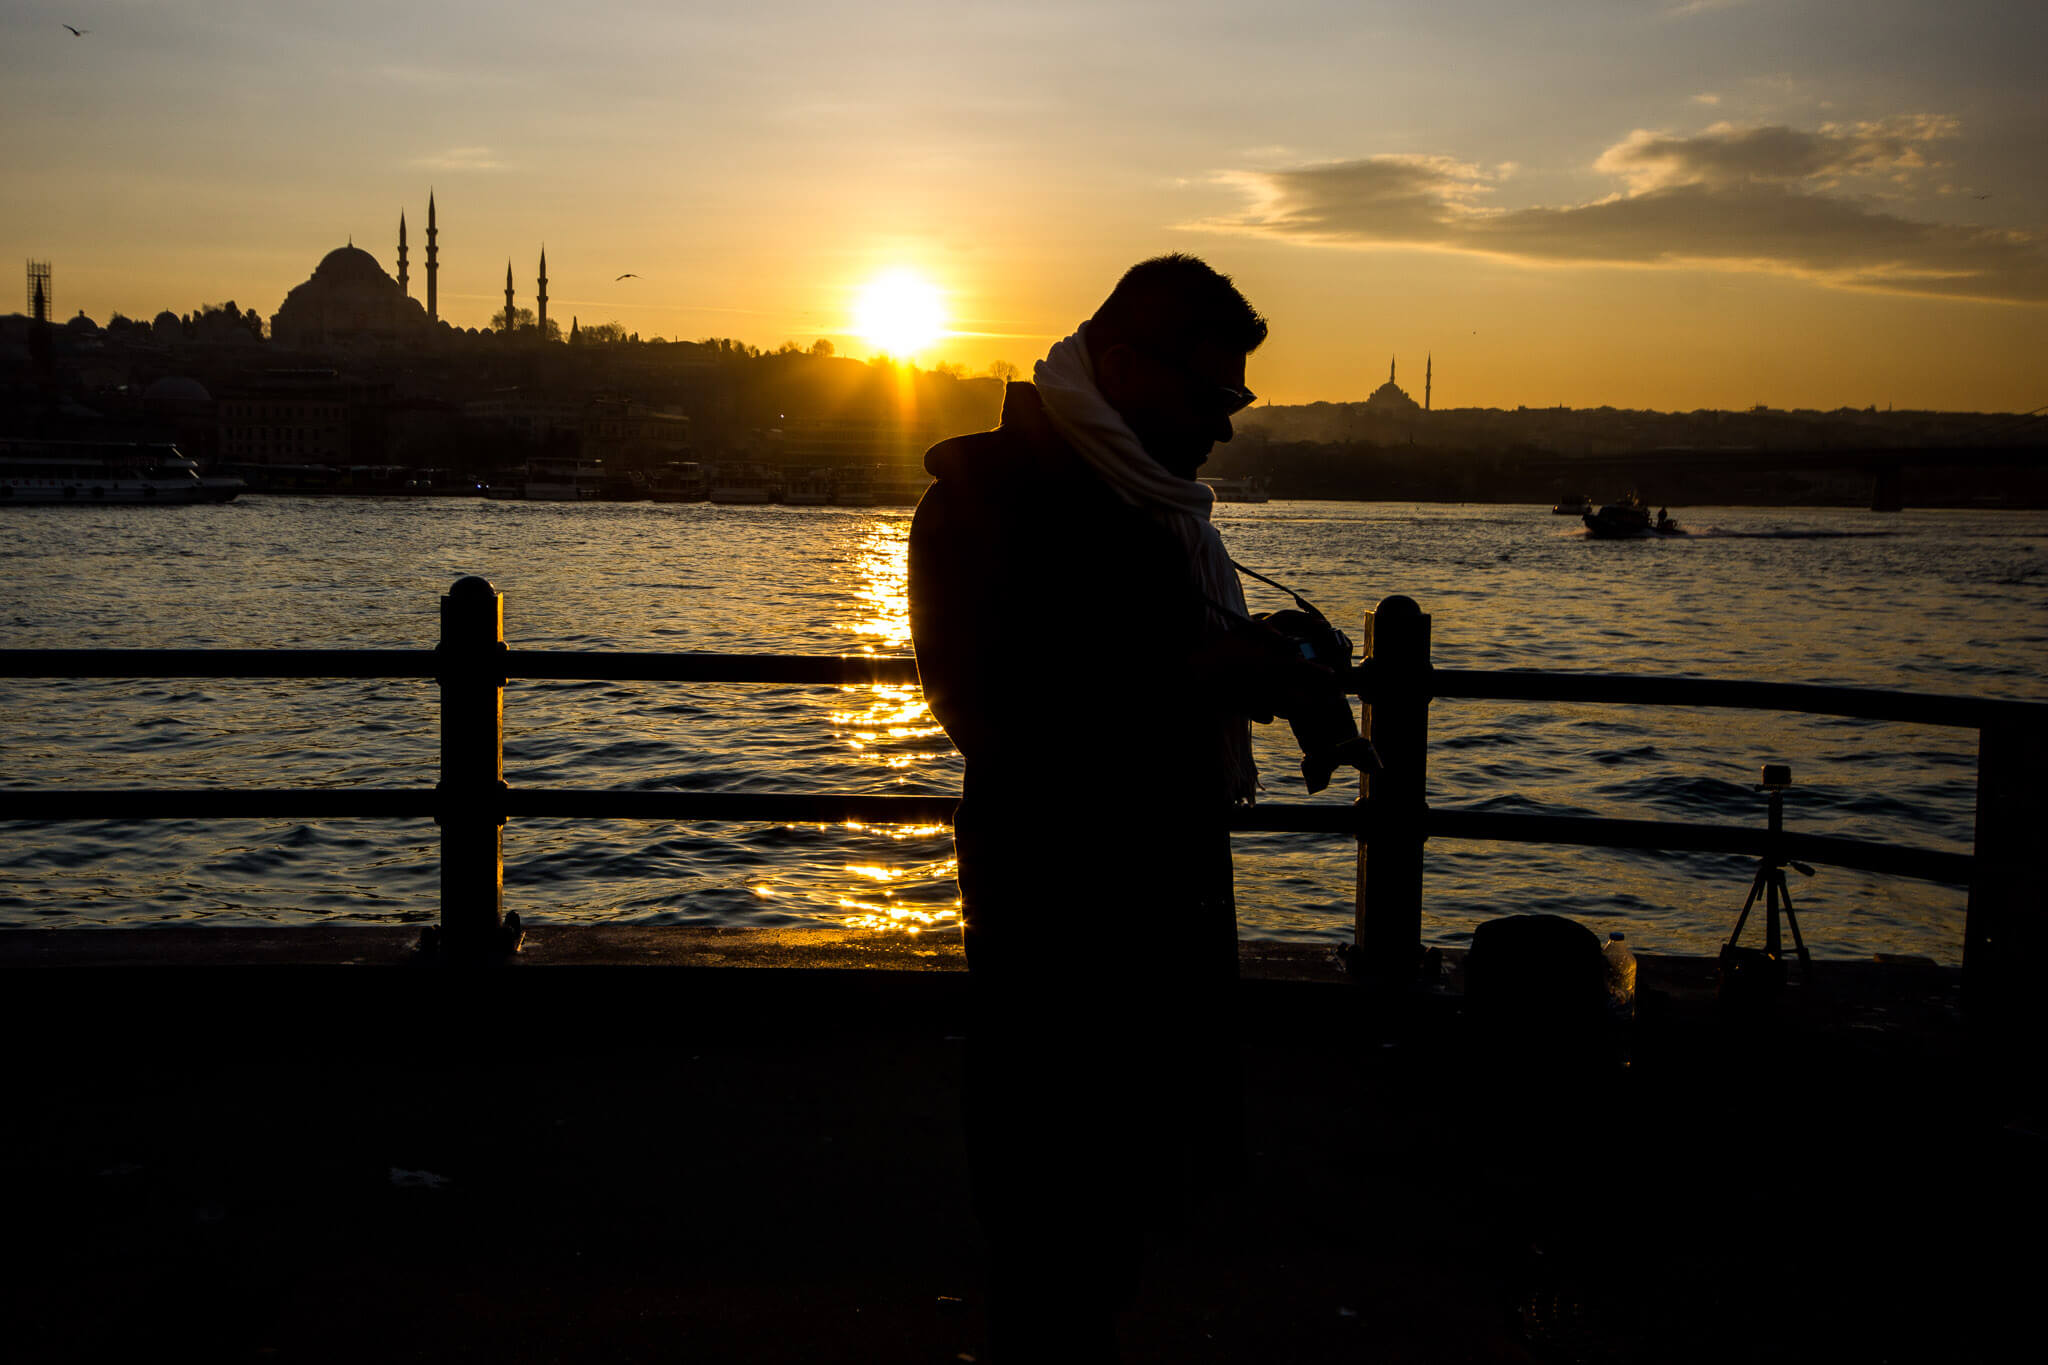 The Man of Wonders at the Golden Horn of Istanbul